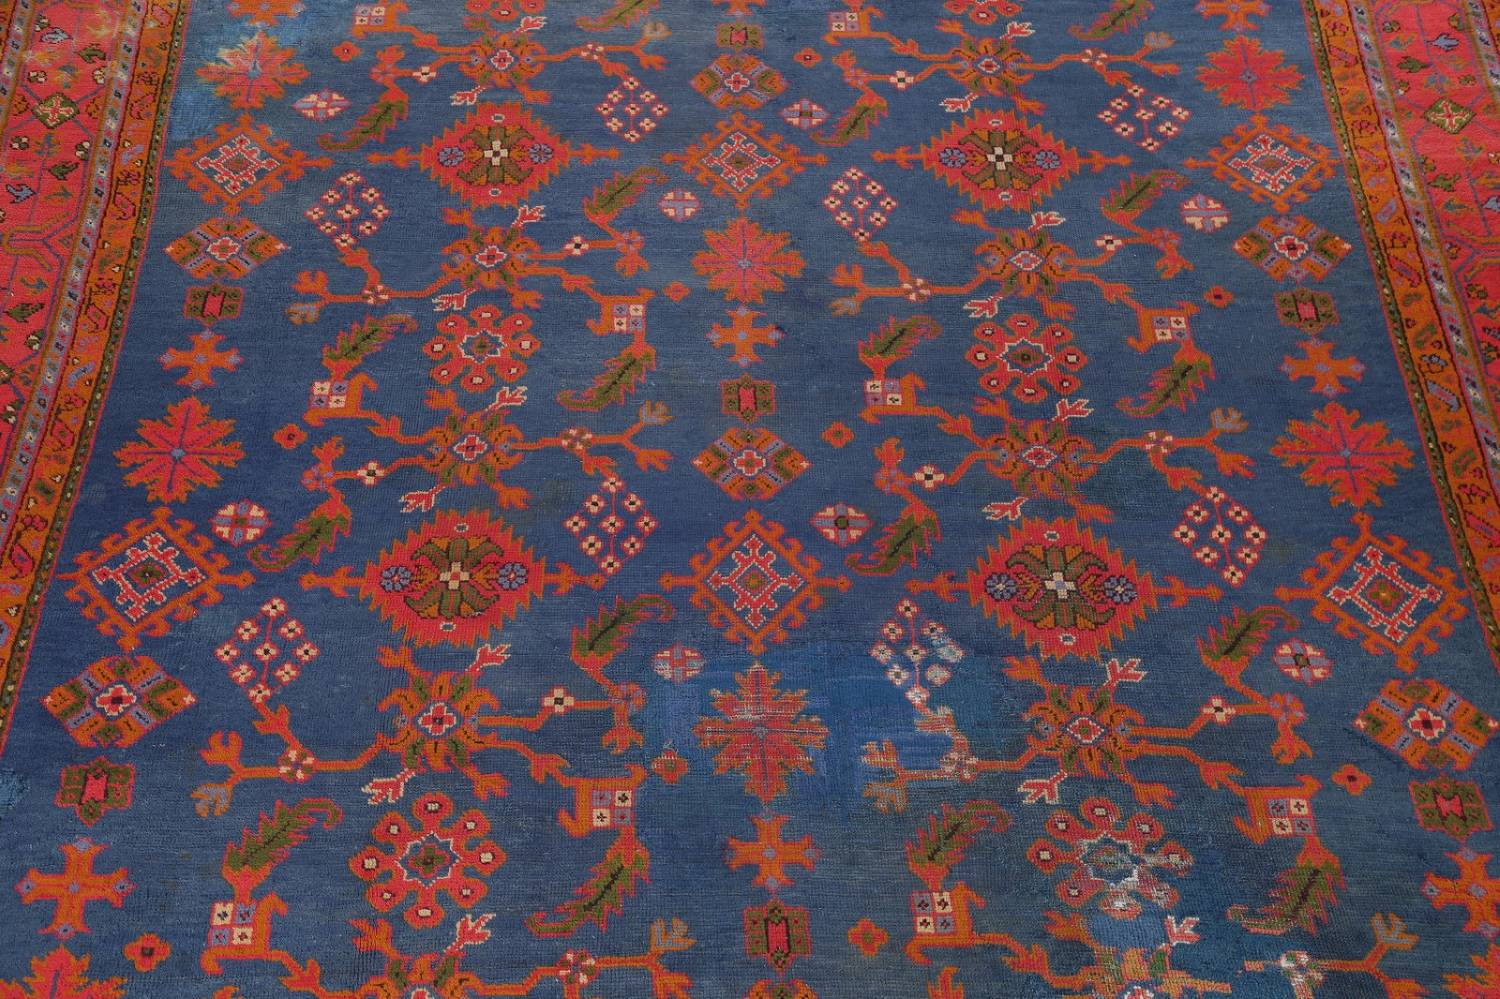 Antique Vegetable Dye Oushak Turkish Hand-Knotted Area Rug Wool 11x16 image 4